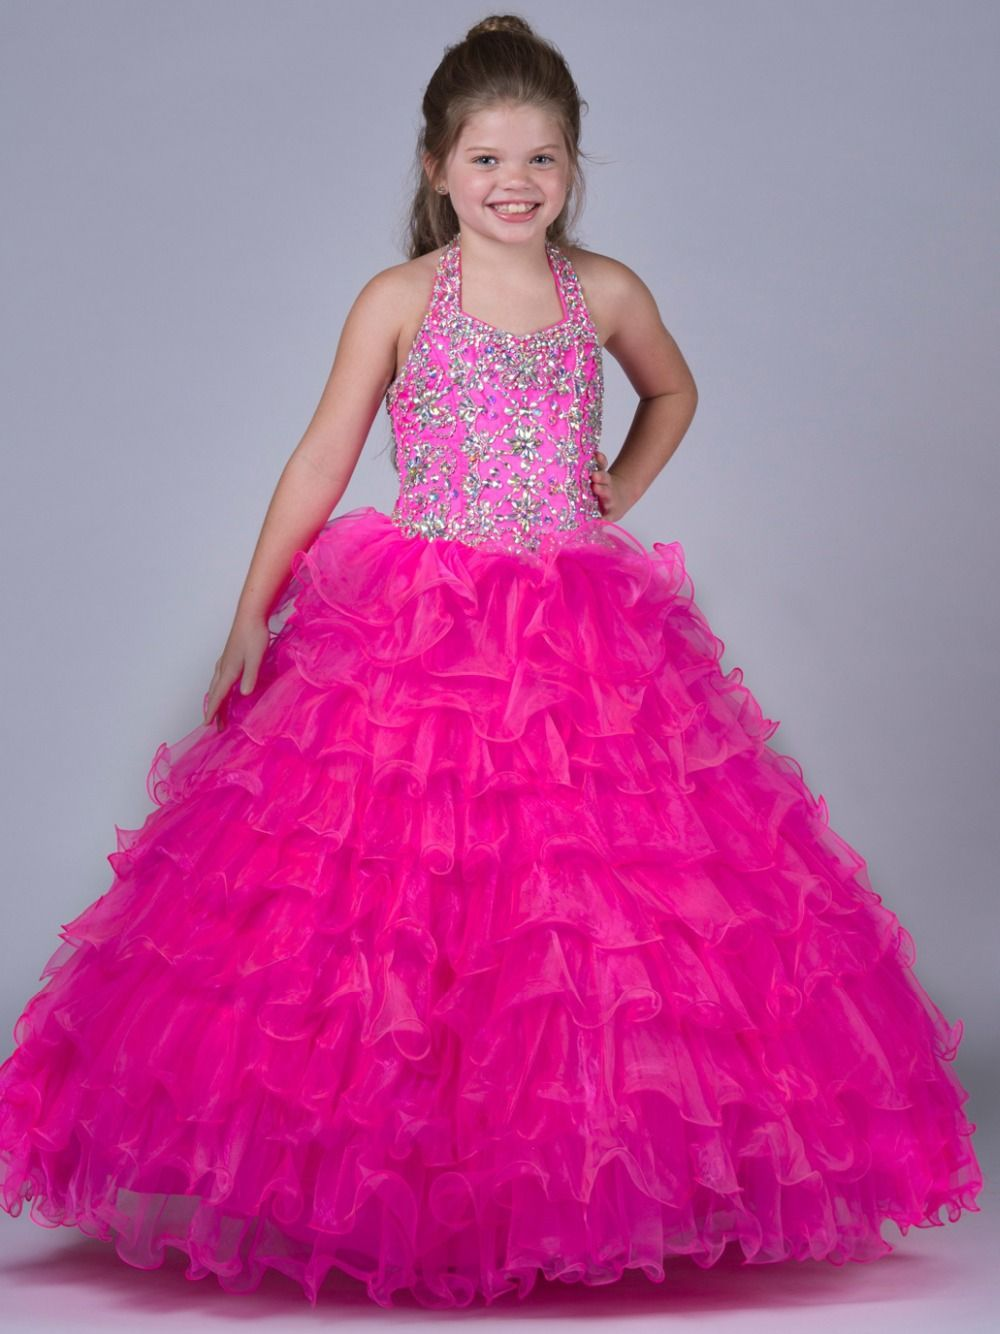 Similiar Masquerade Dresses For 11 Year Olds Keywords